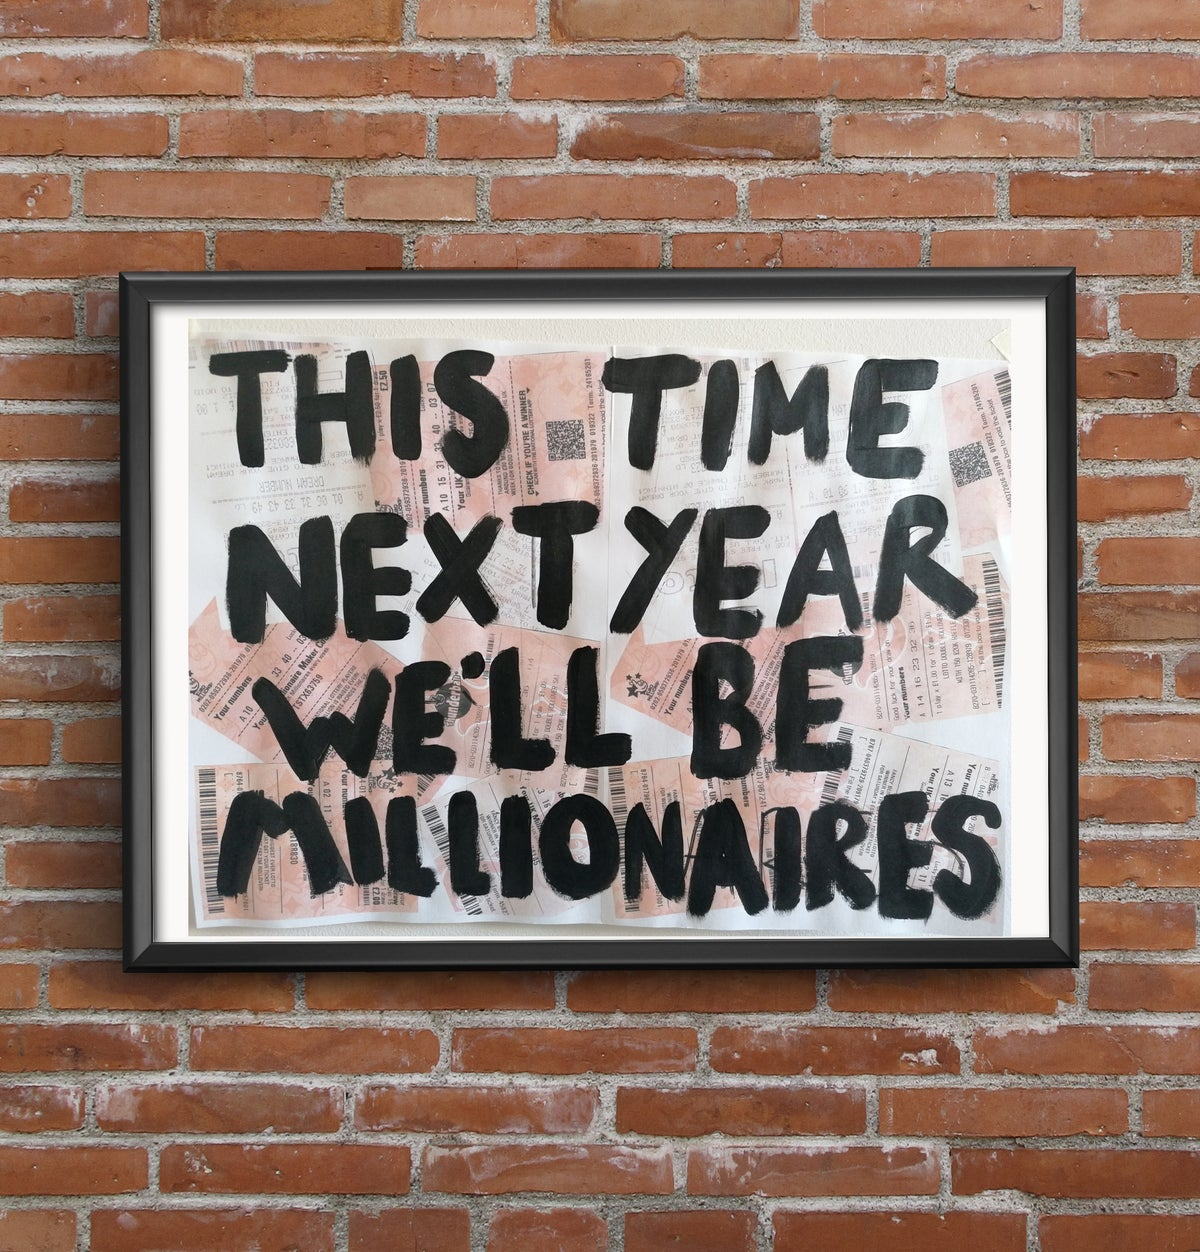 This time next year we'll be millionaires